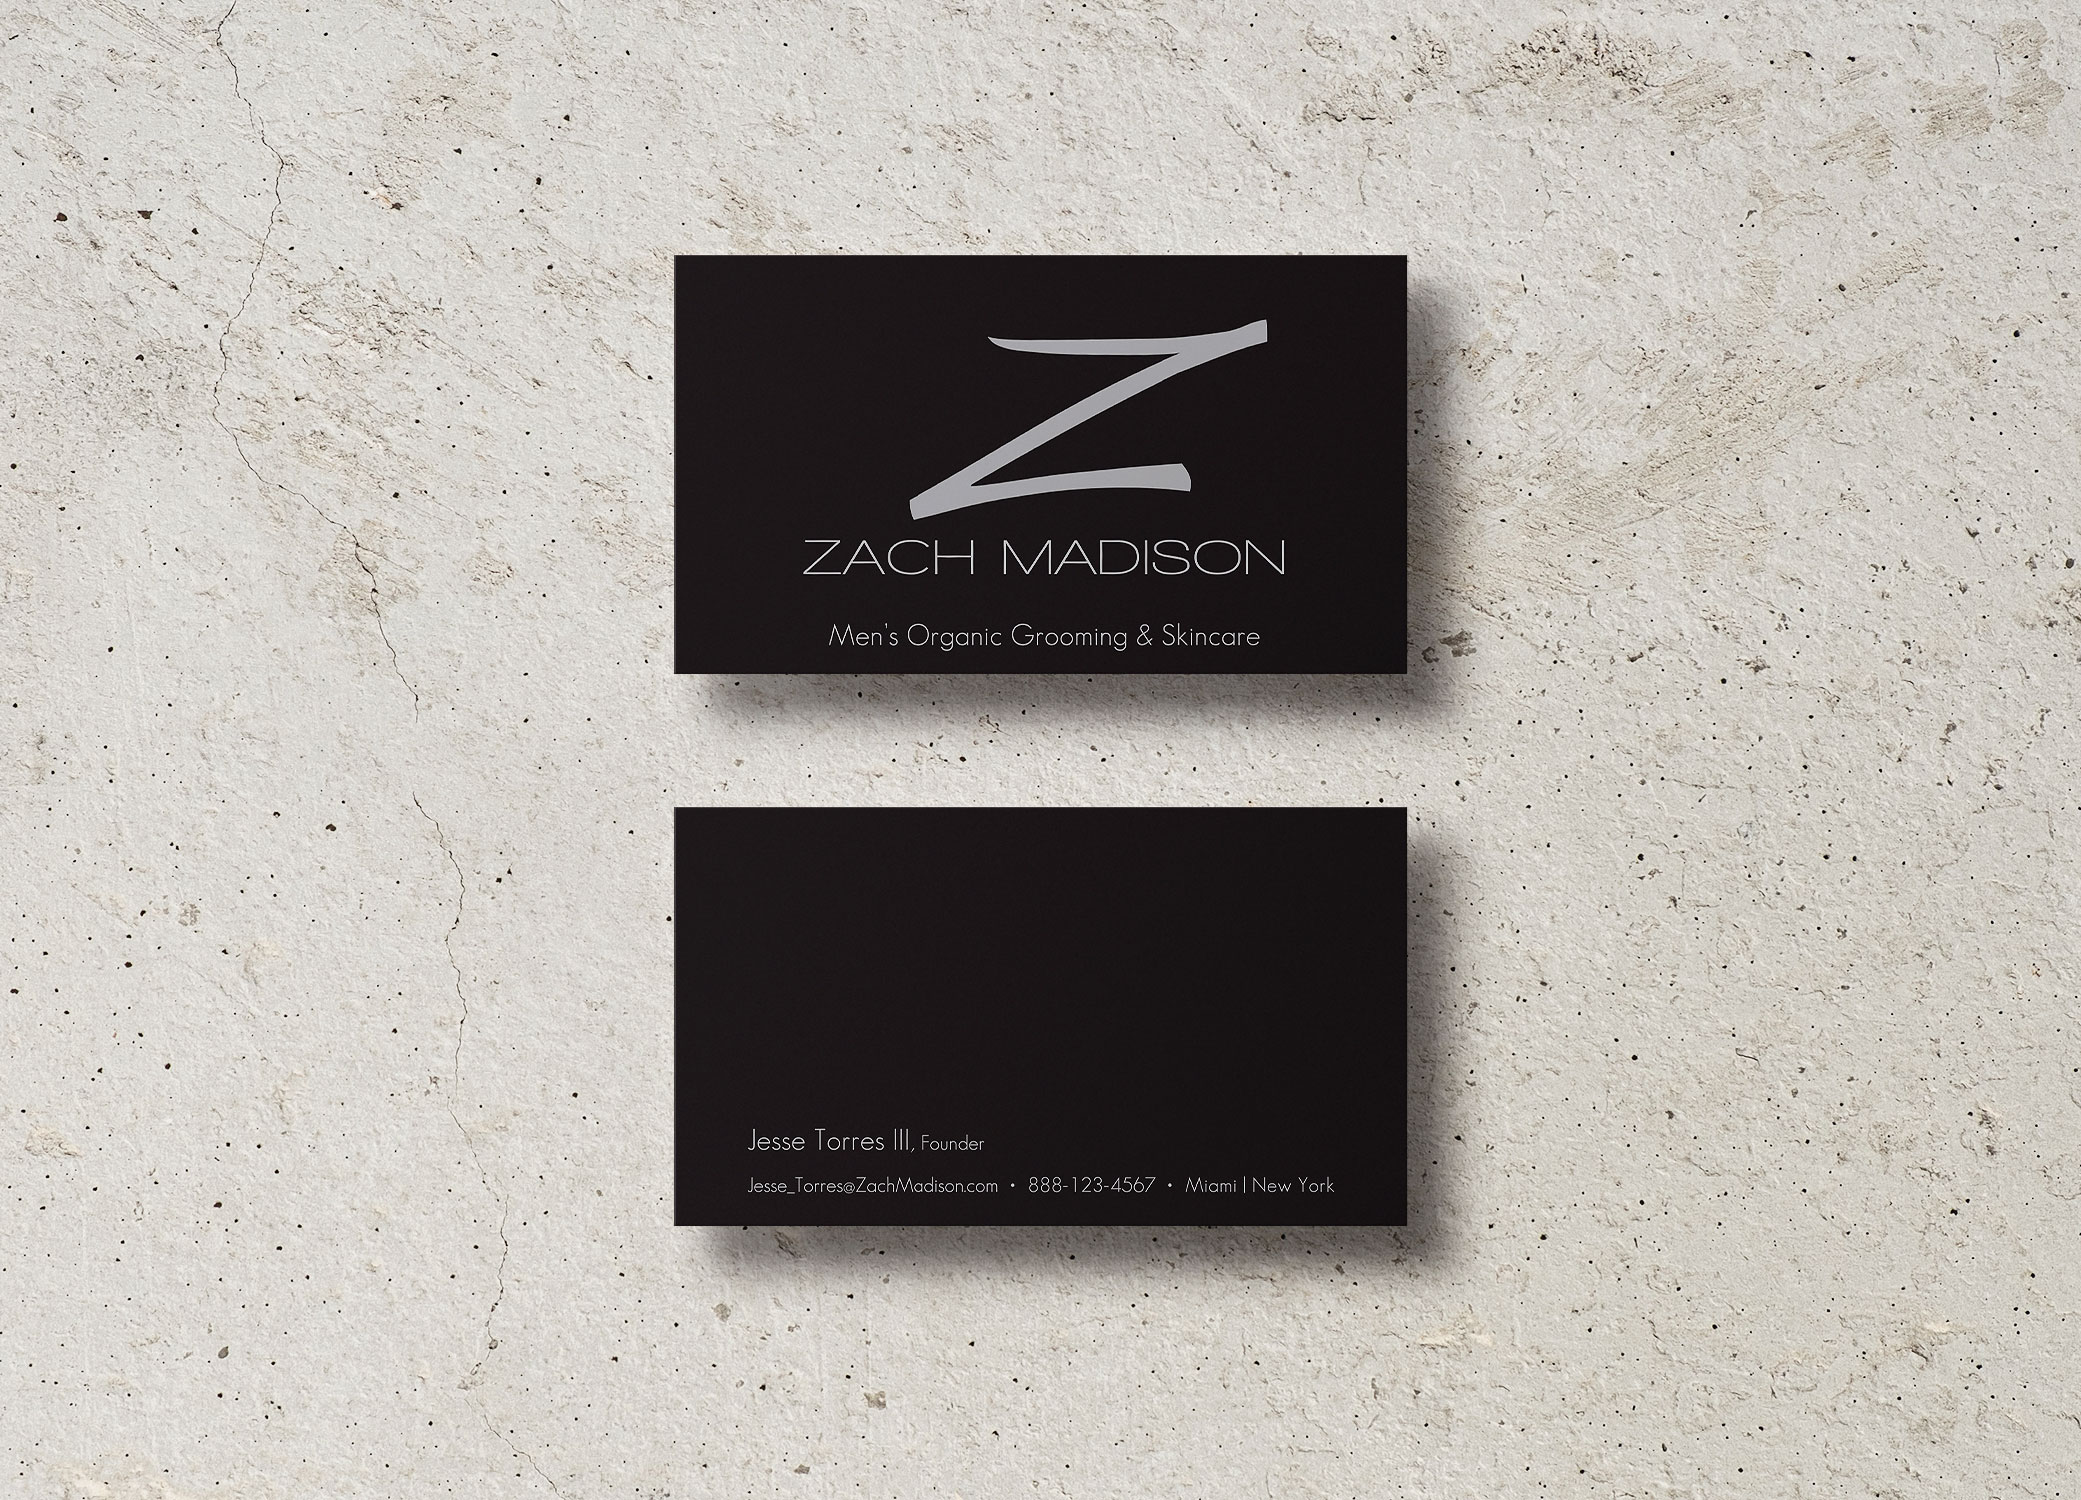 Zach Madison black business cards with metallic 'Z' showing front and back on top of granite backdrop.